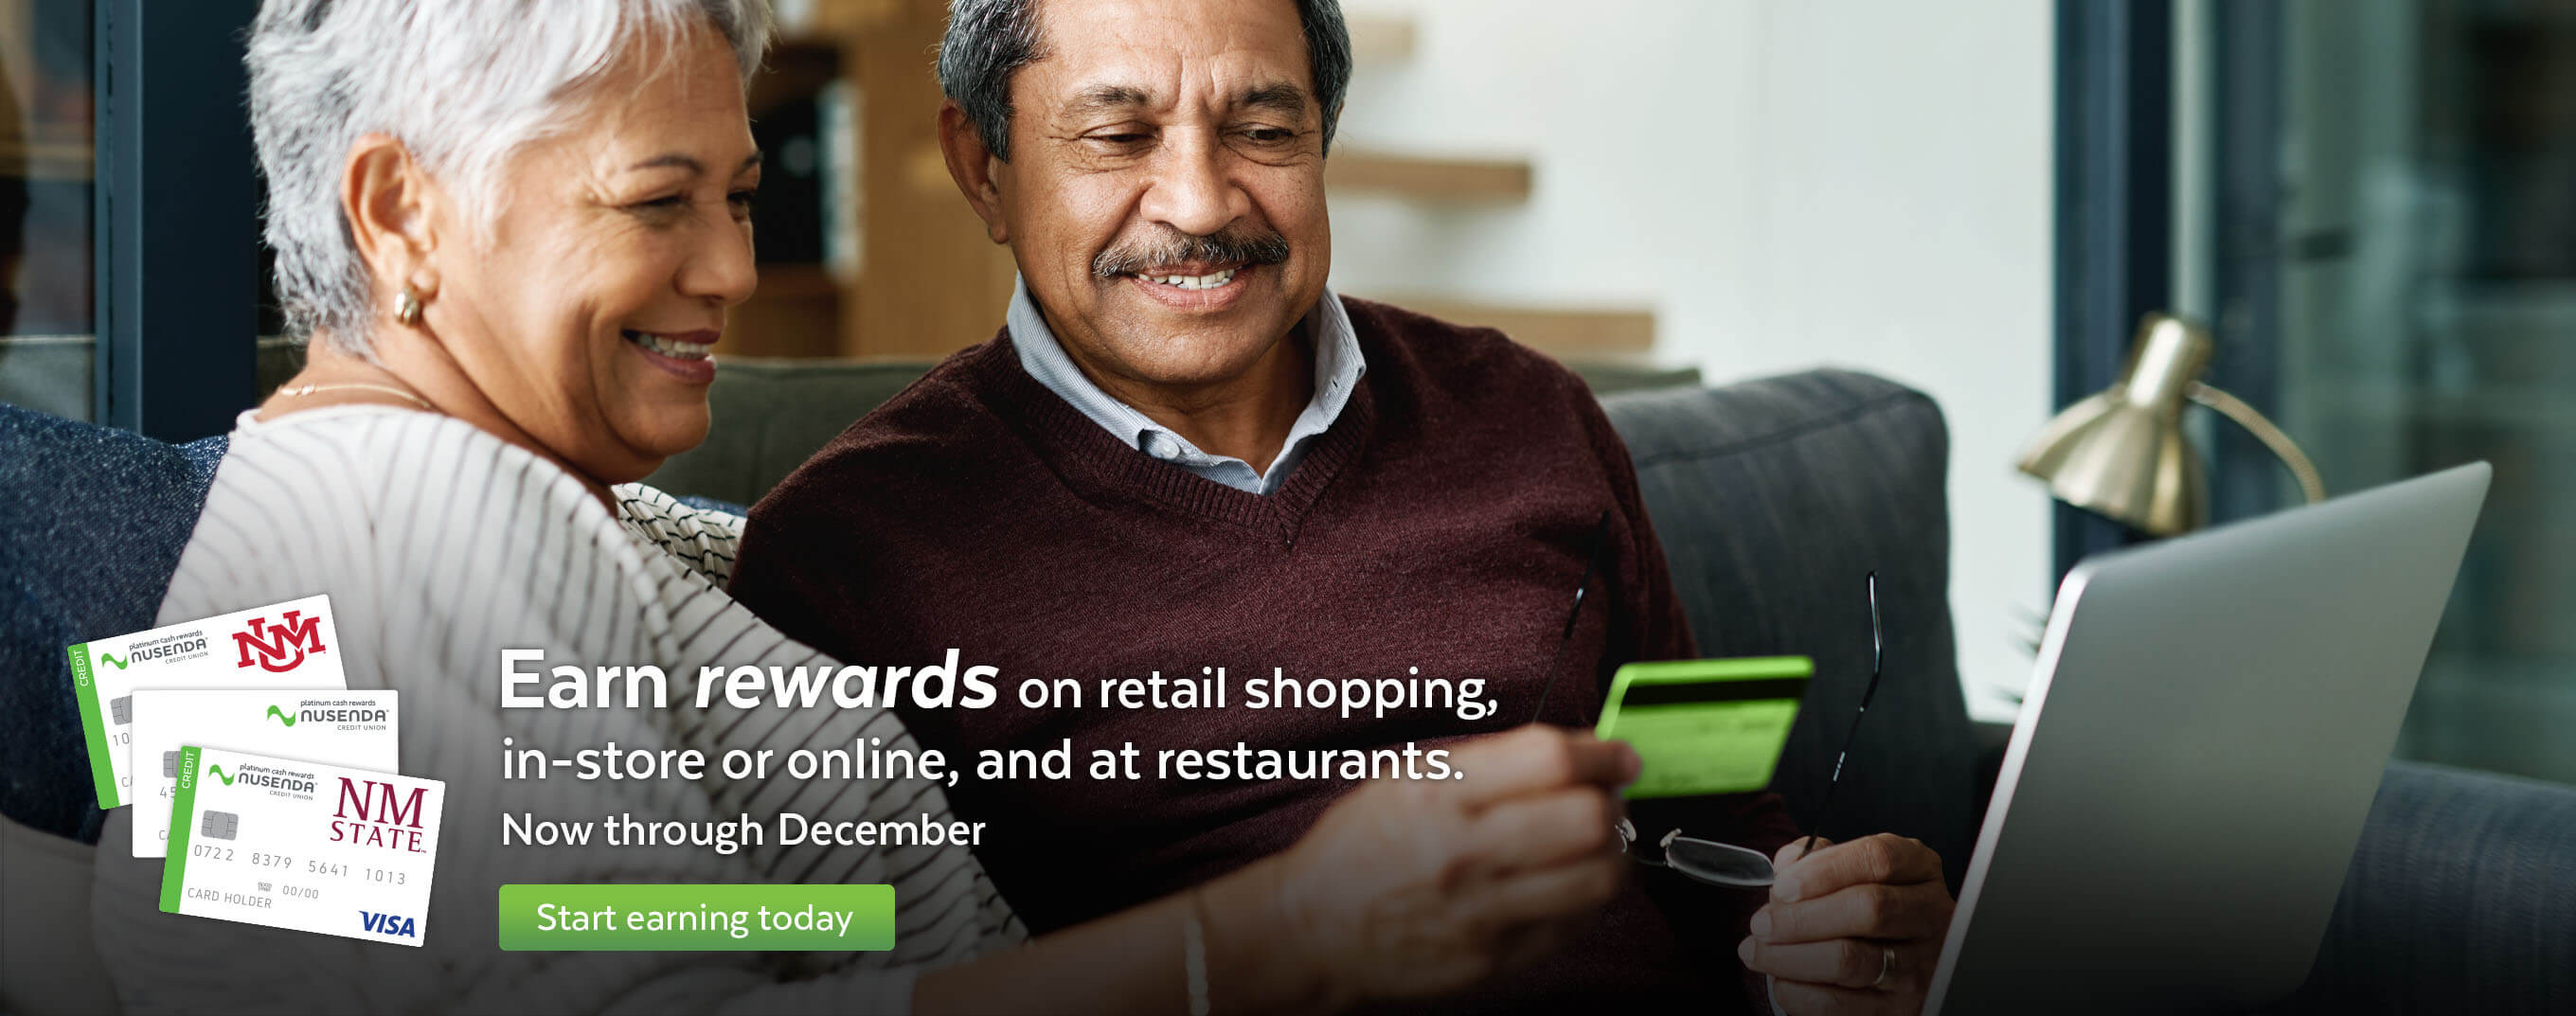 Earn rewards on retail shopping, in-store or online, and at restaurants now through December.